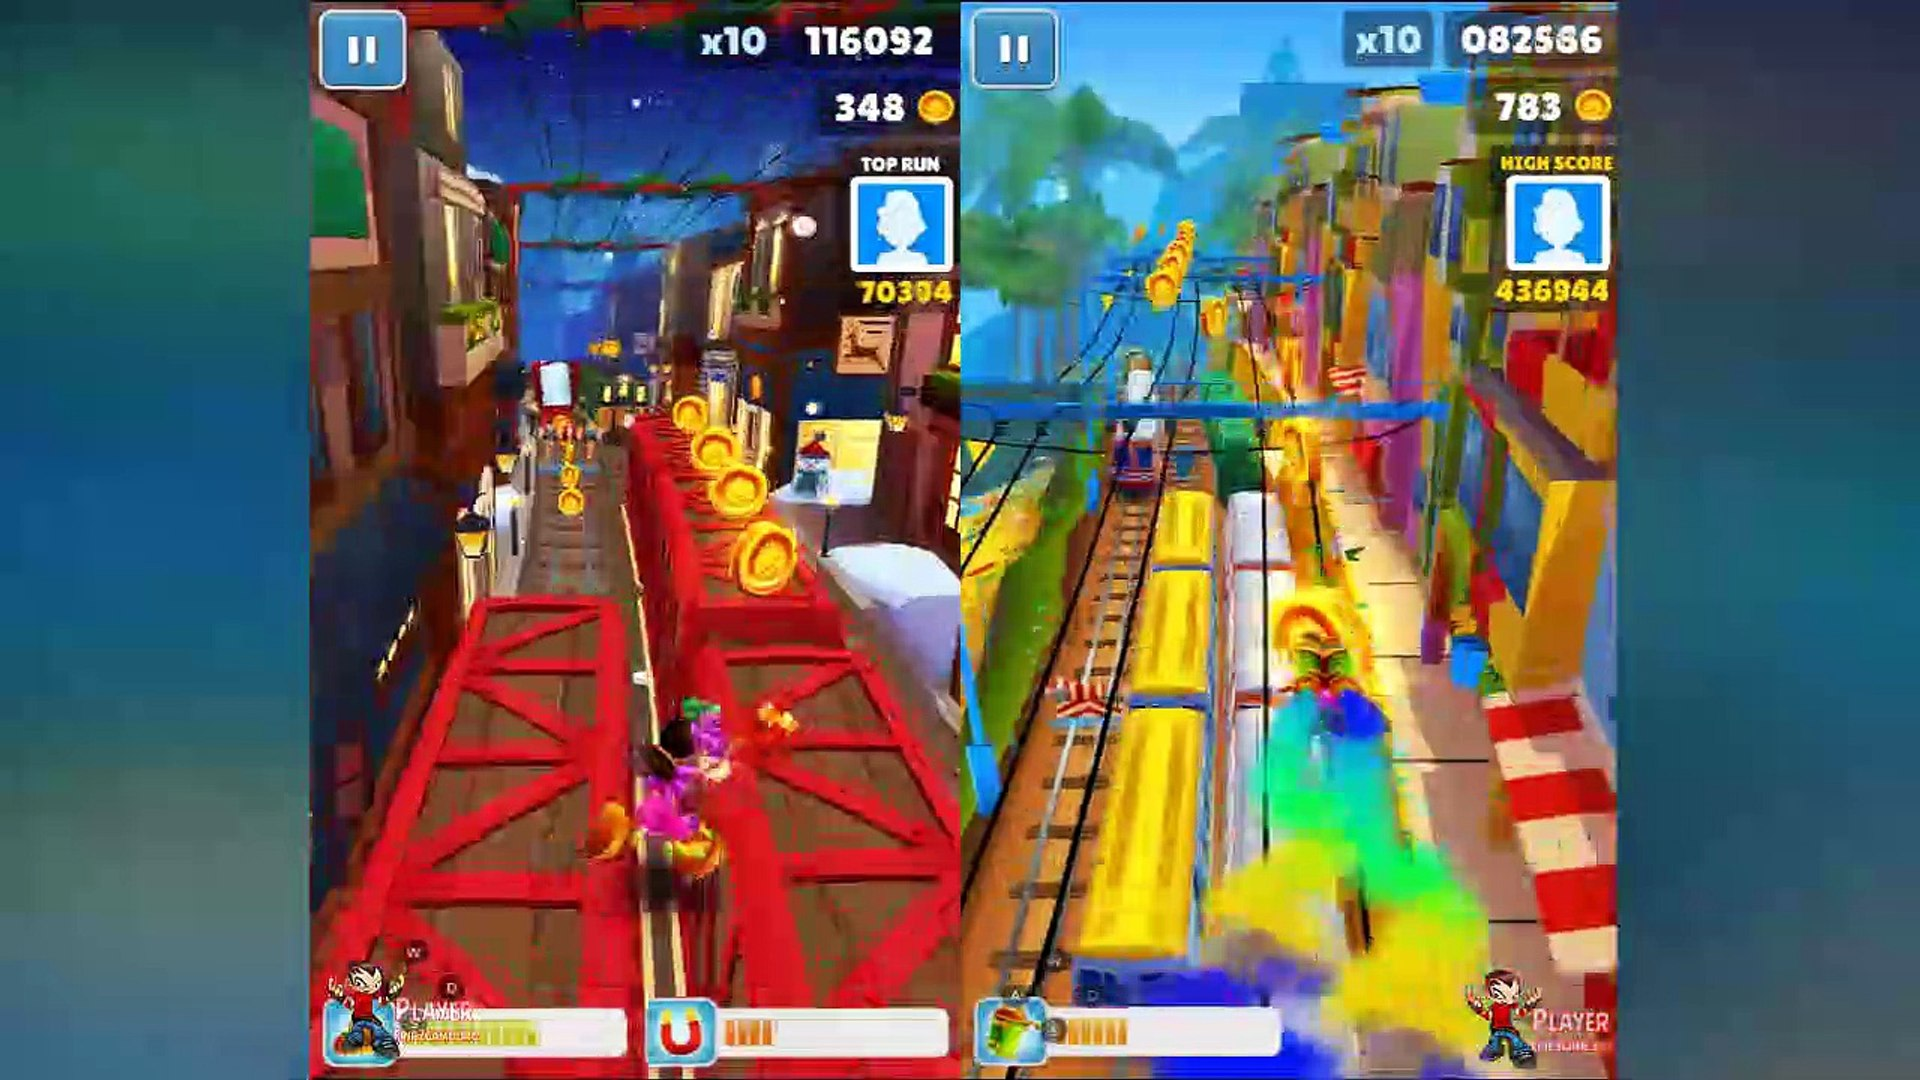 Carmen Rio Special In London Vs Carmen Shake Outfit In Rio - Subway Surfers 2019 Android Gameplay